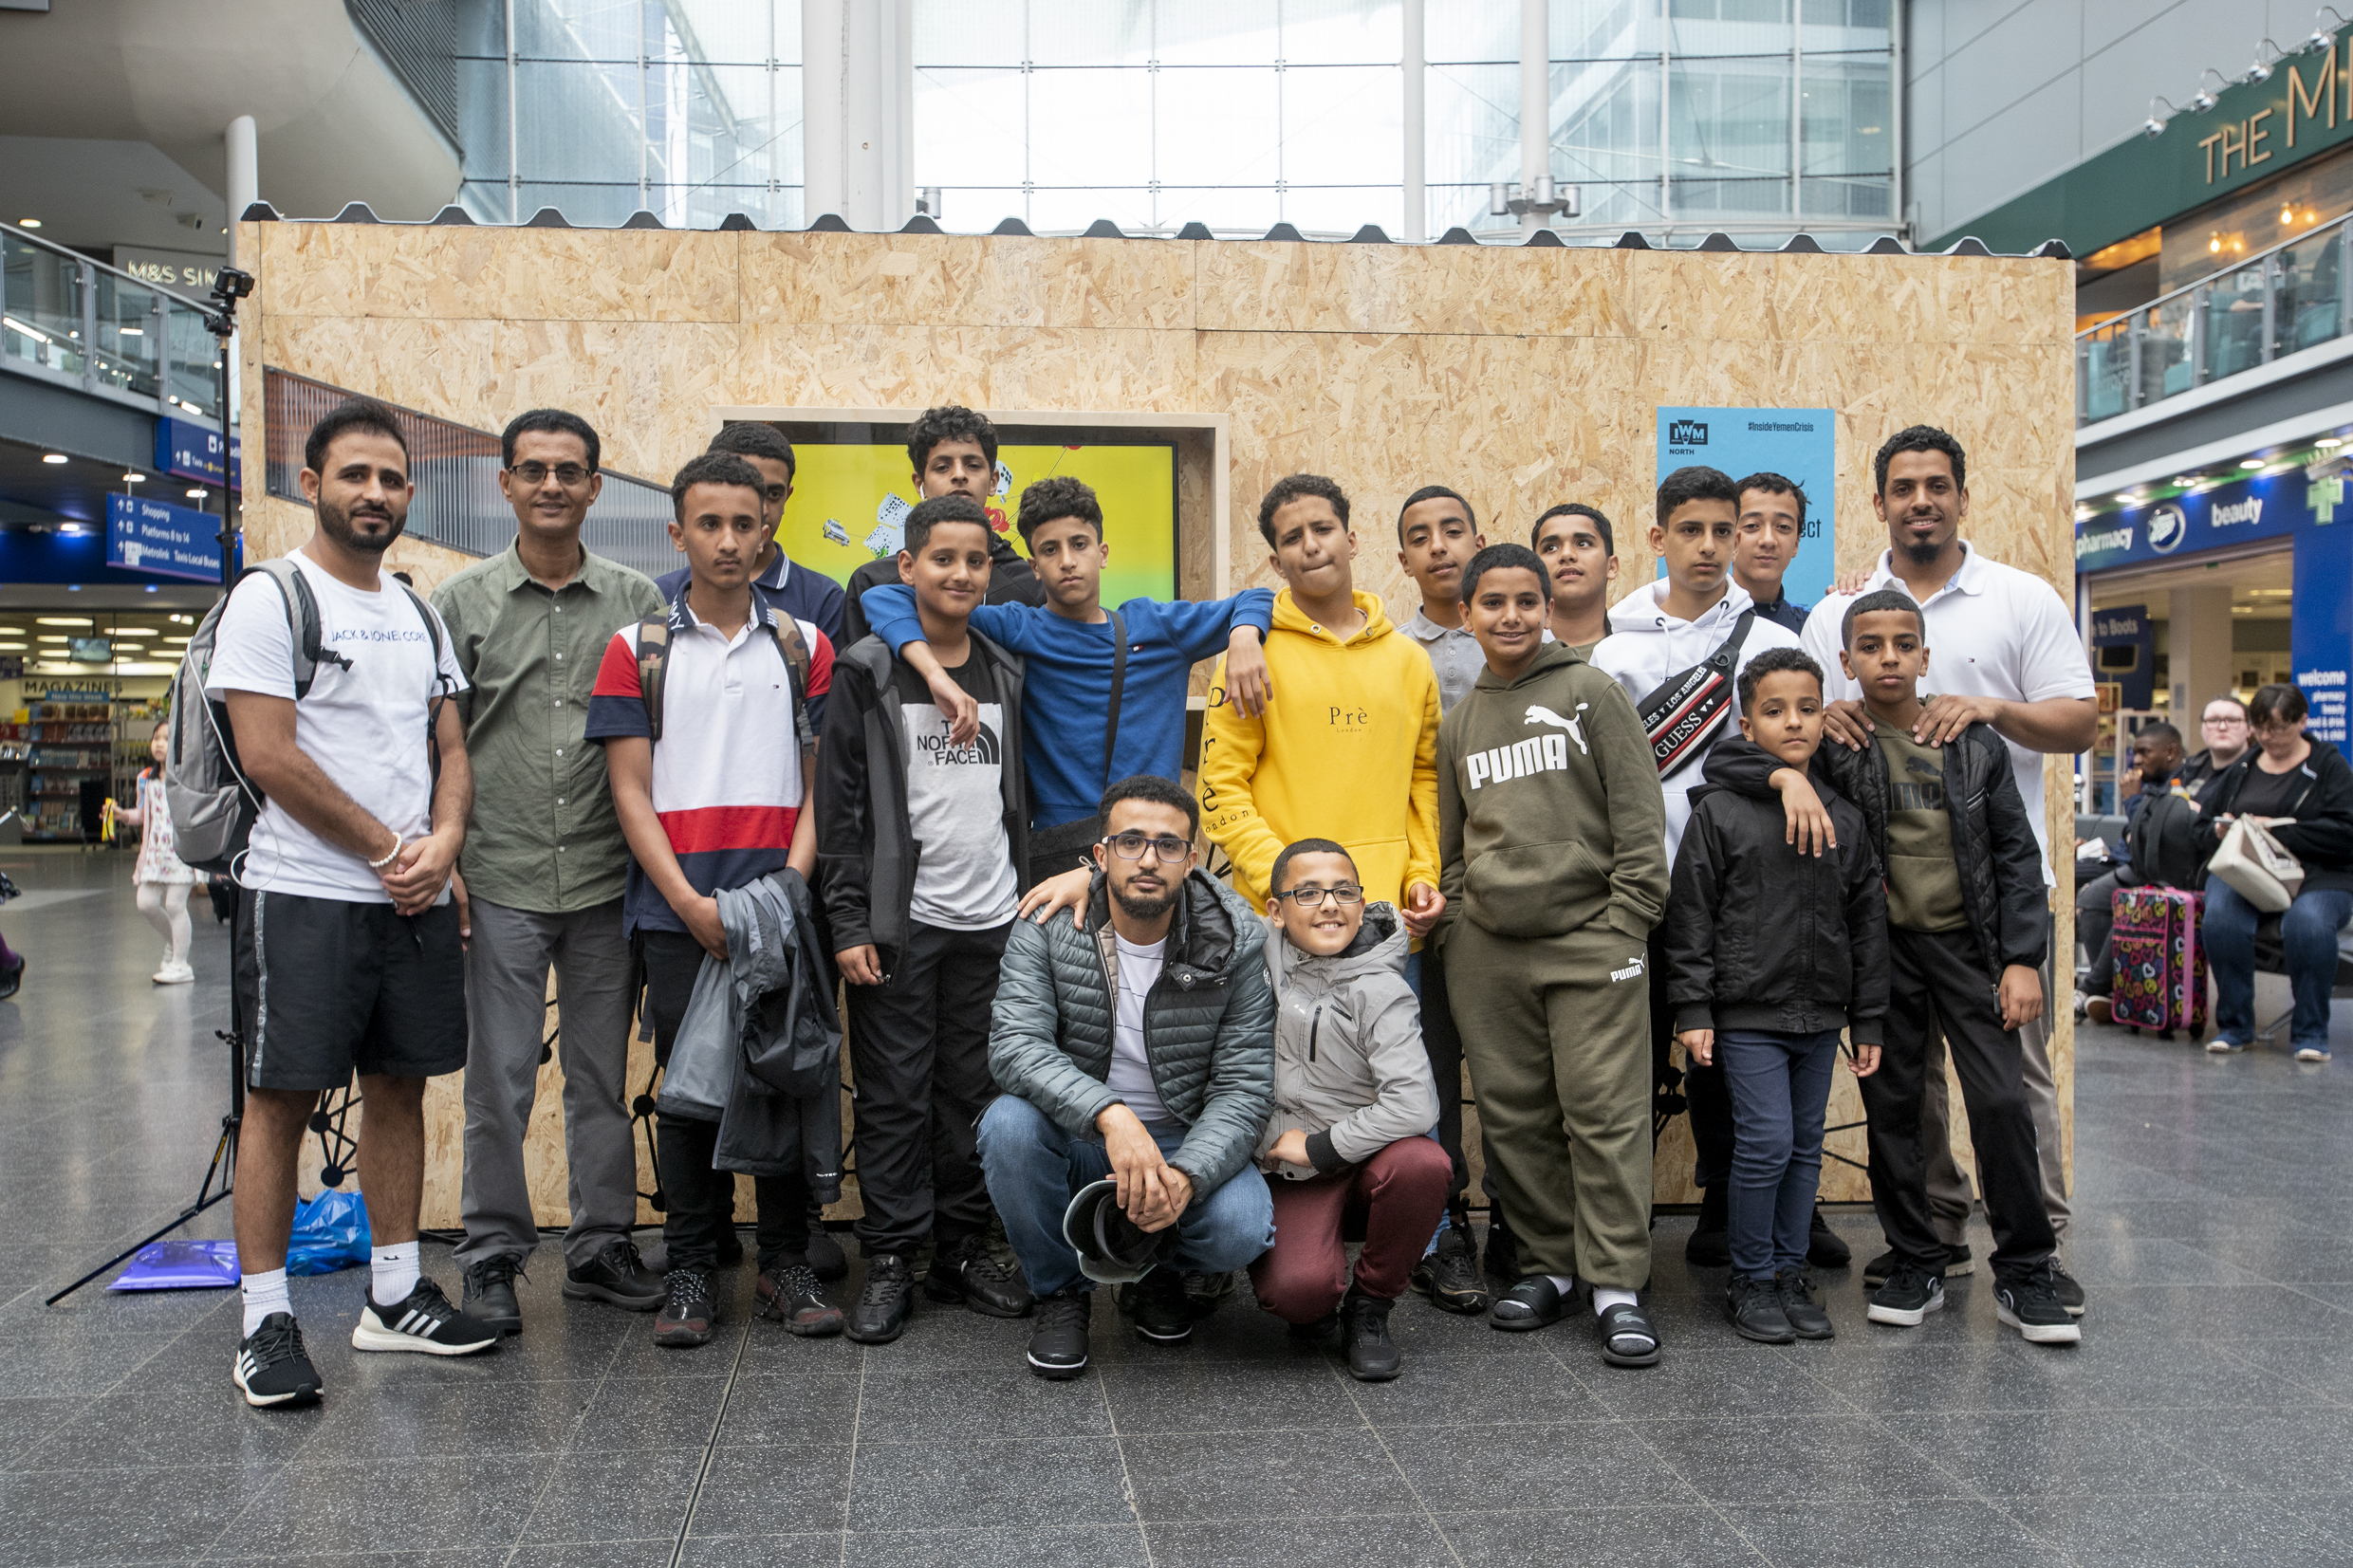 Group portrait photograph of young people performing a spoken word piece after participating in workshops with spoken word poet Amerah Saleh